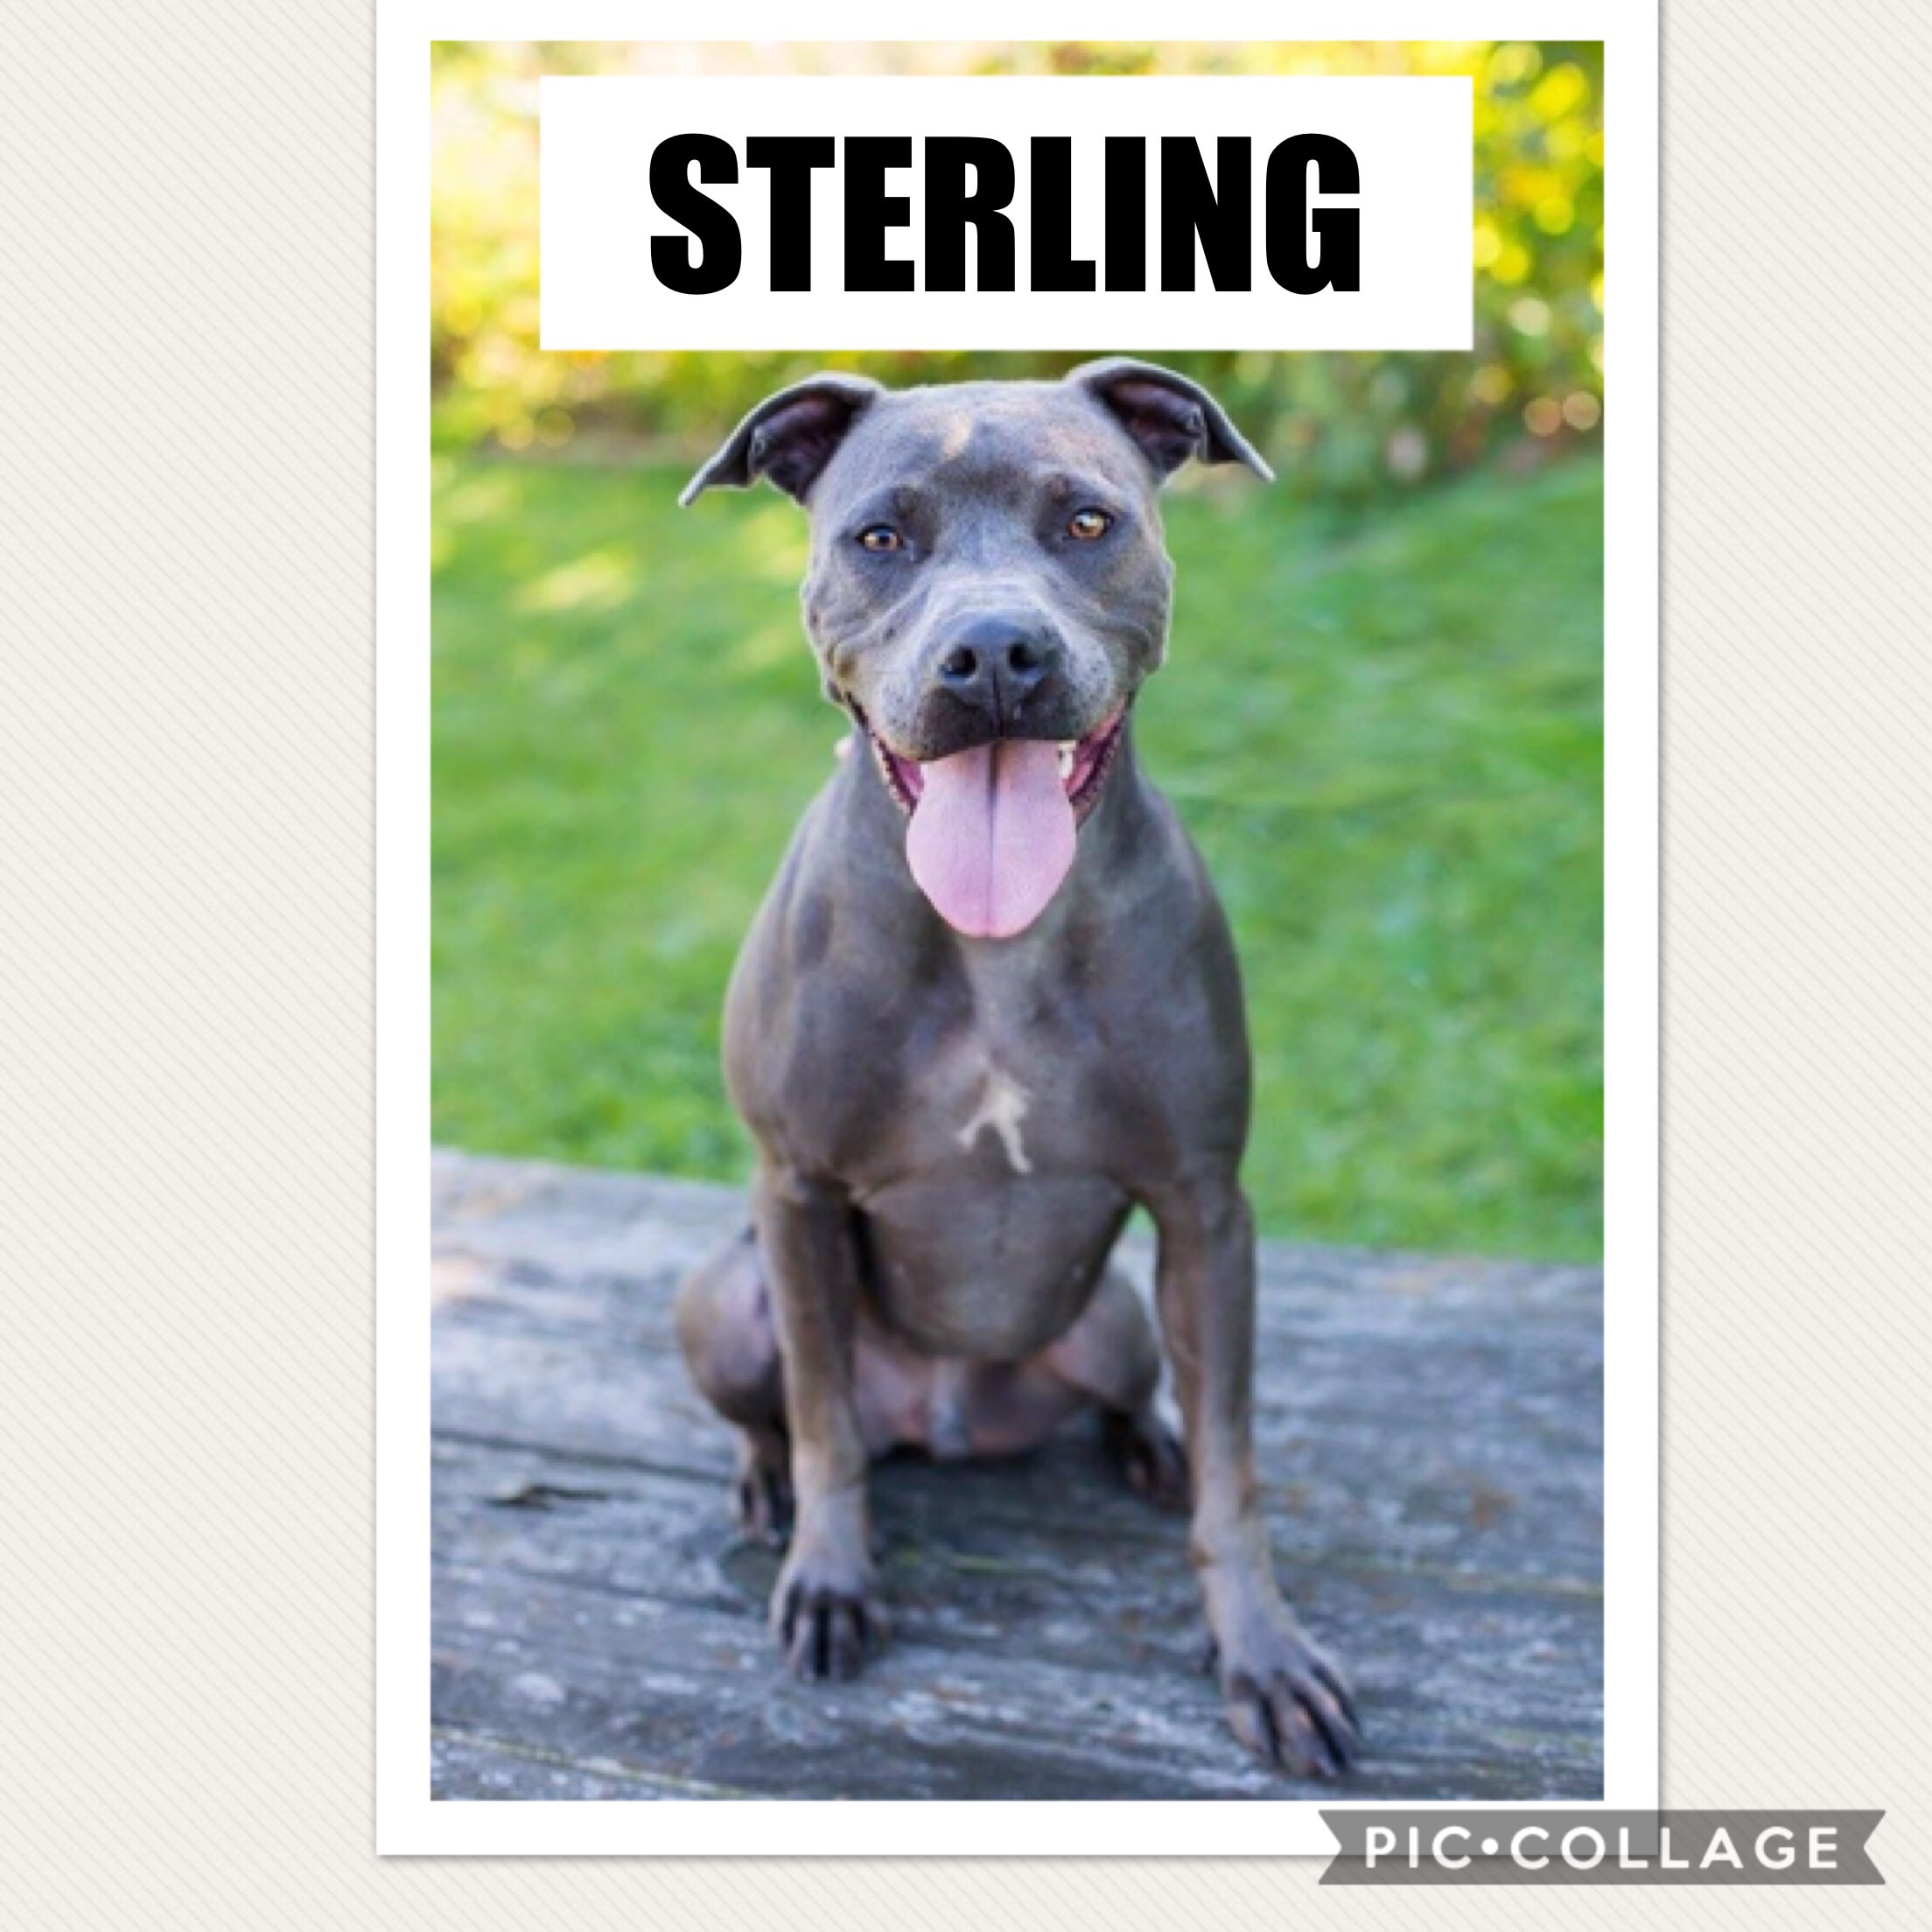 Sterling - Pit Bull Terrier Mix